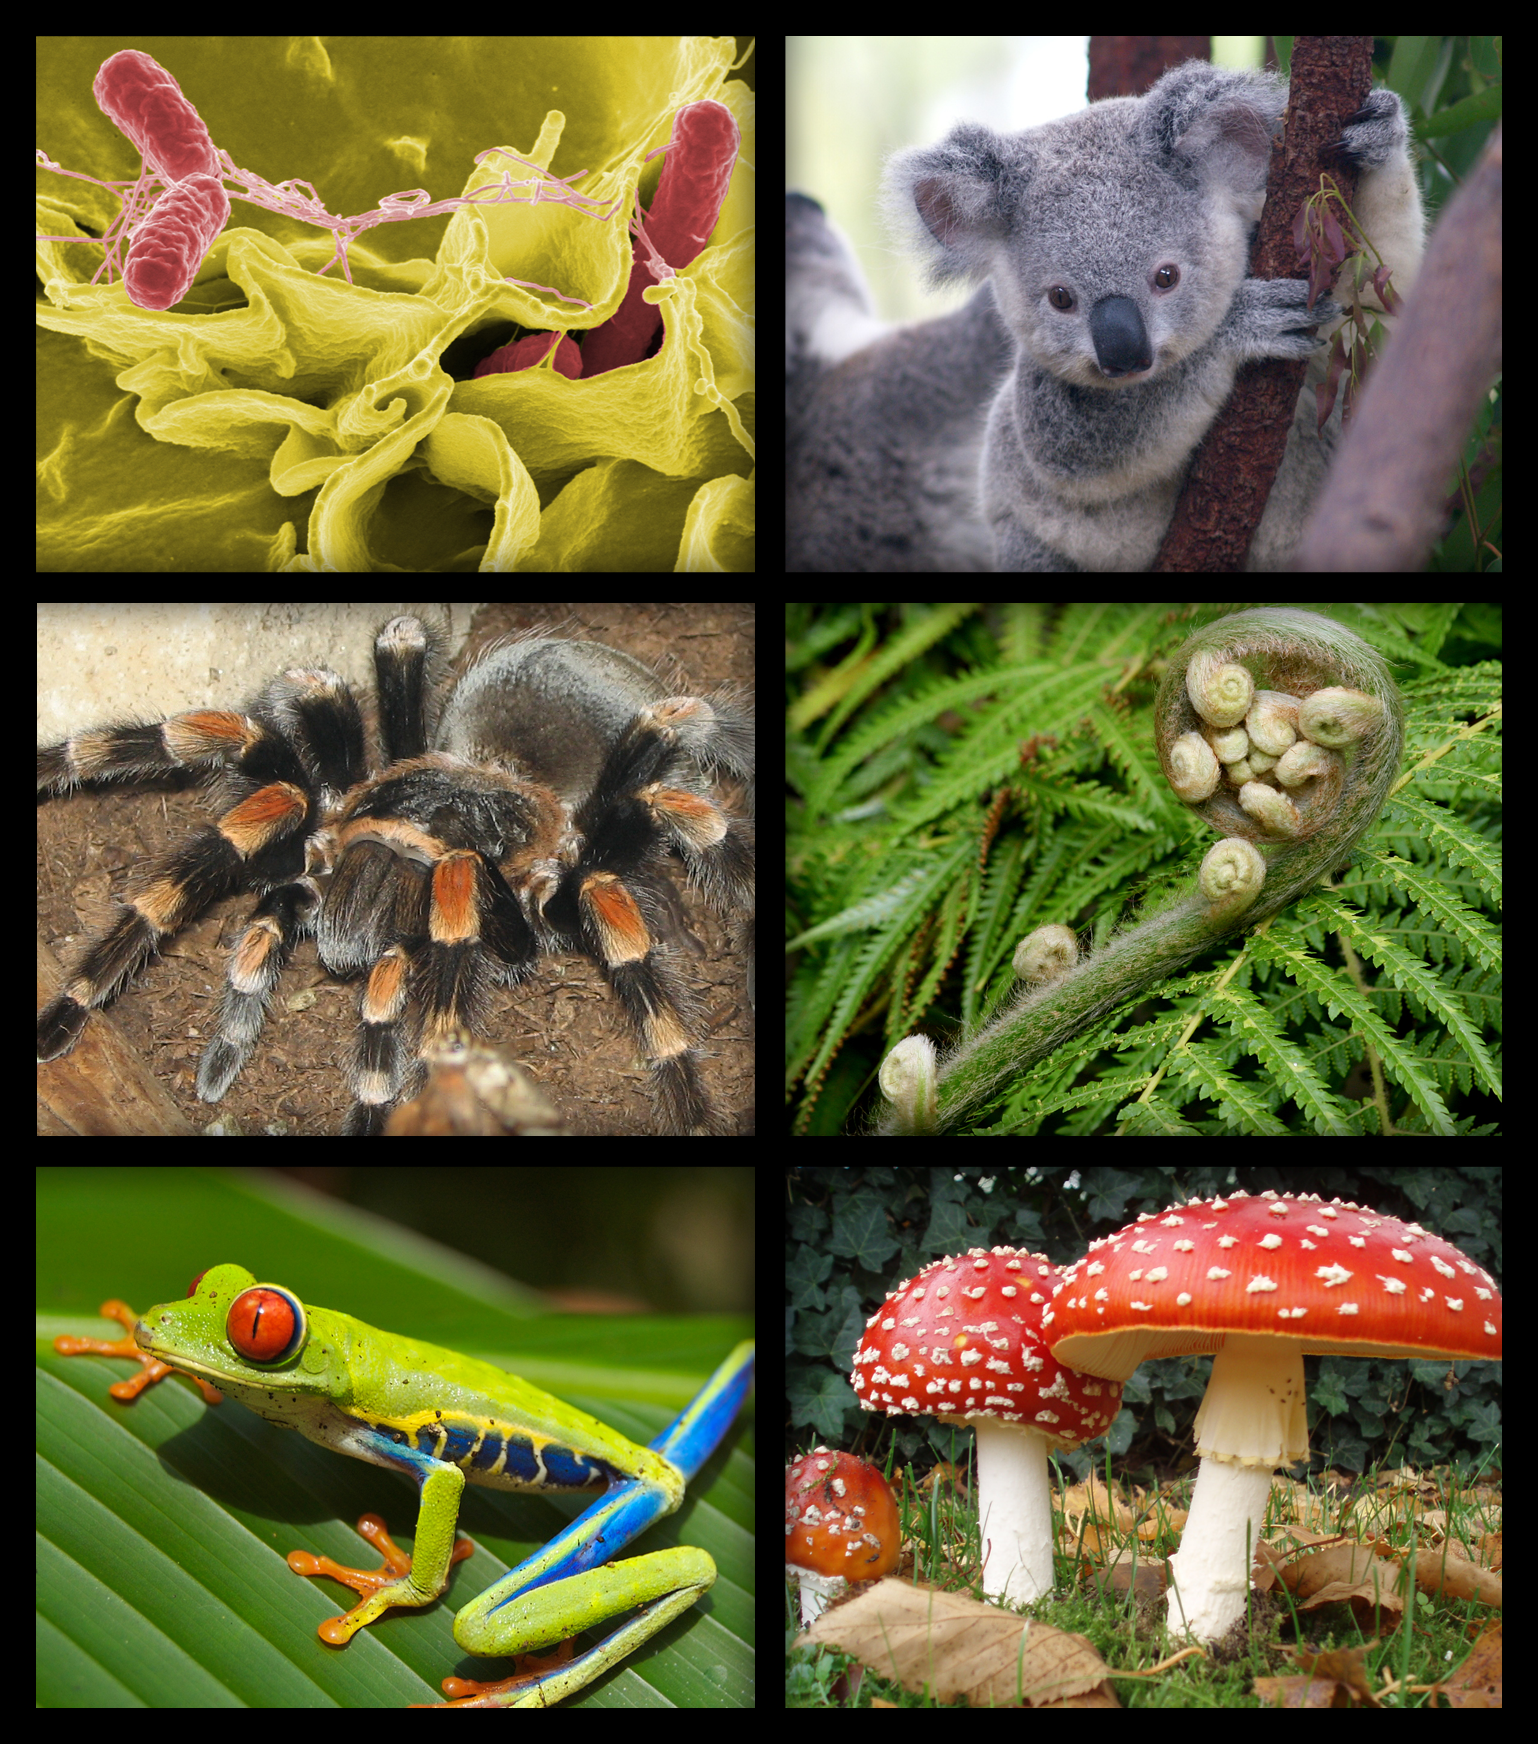 """Biology organism collage"" by Azcolvin429 - Own work. Licensed under Creative Commons Attribution-Share Alike 3.0 via Wikimedia Commons - http://commons.wikimedia.org/wiki/File:Biology_organism_collage.png#mediaviewer/File:Biology_organism_collage.png"